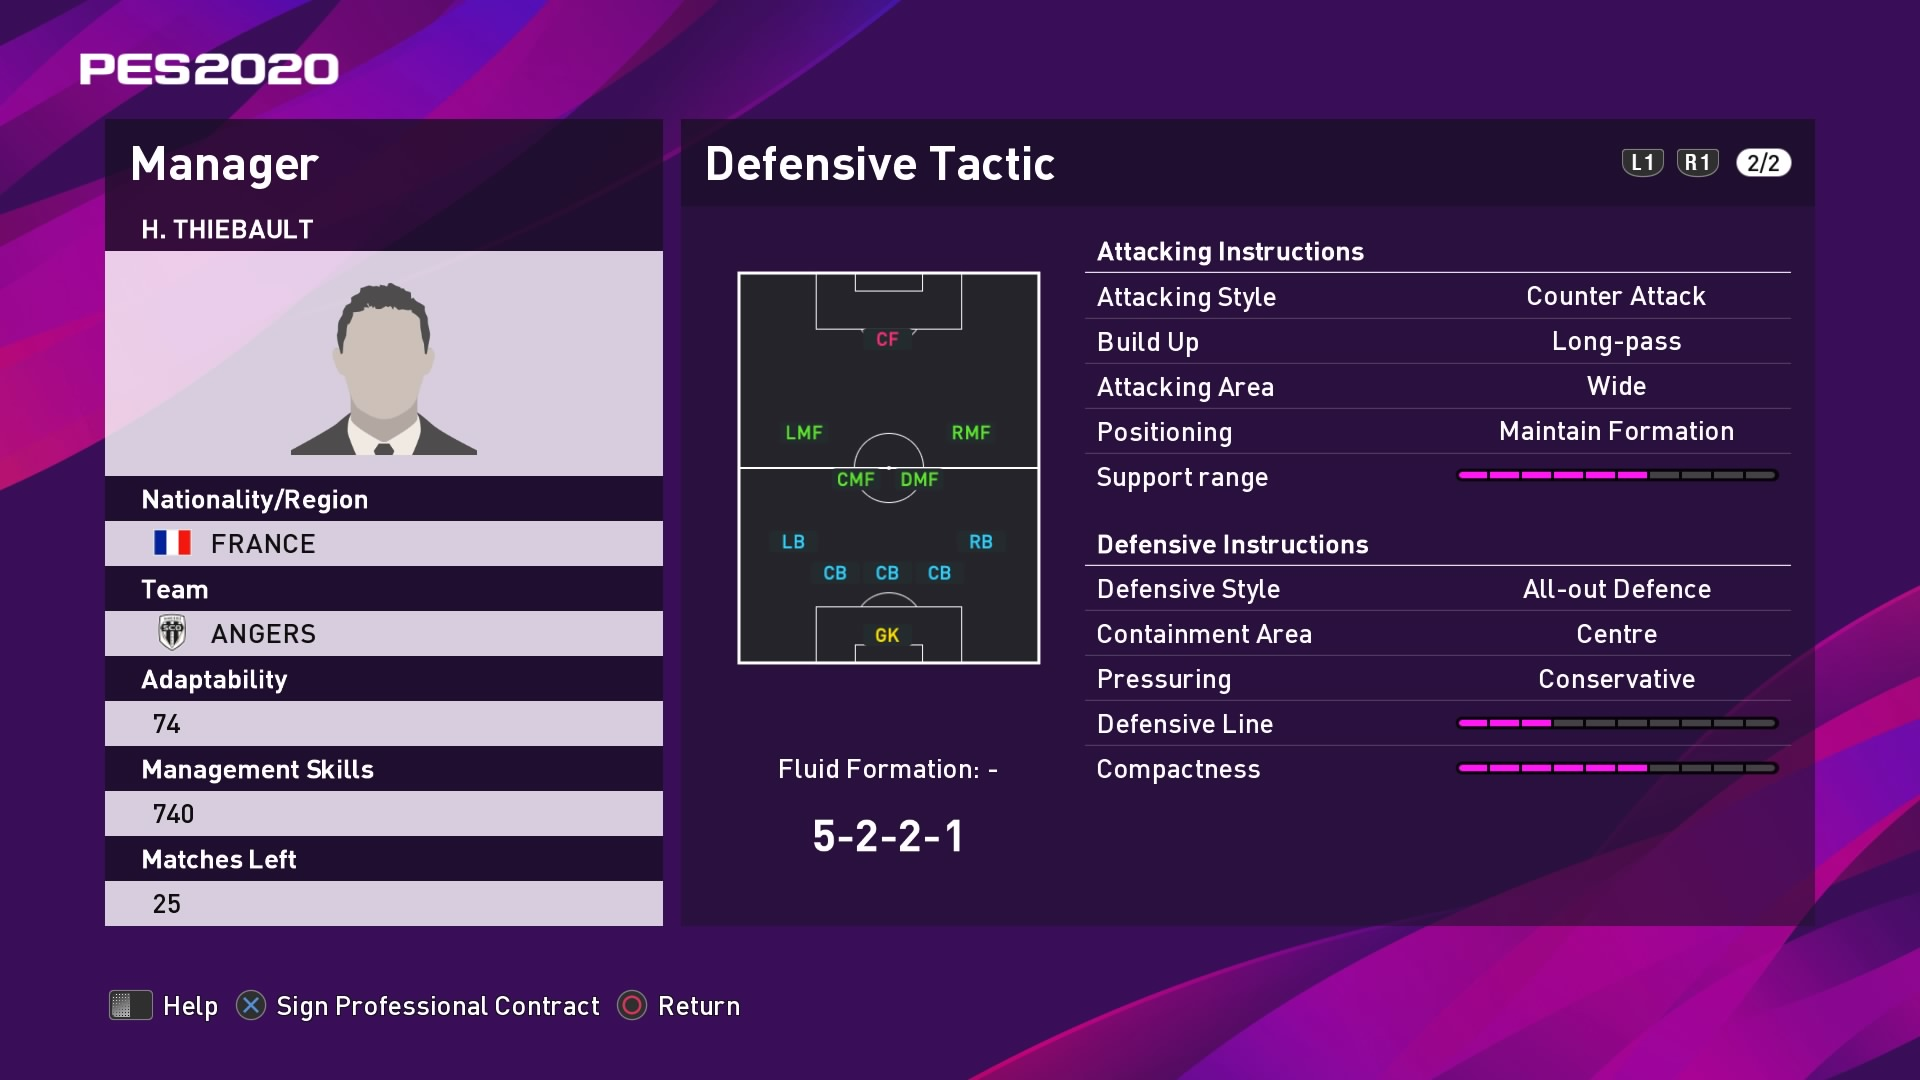 H. Thiebault (Stéphane Moulin ) Defensive Tactic in PES 2020 myClub